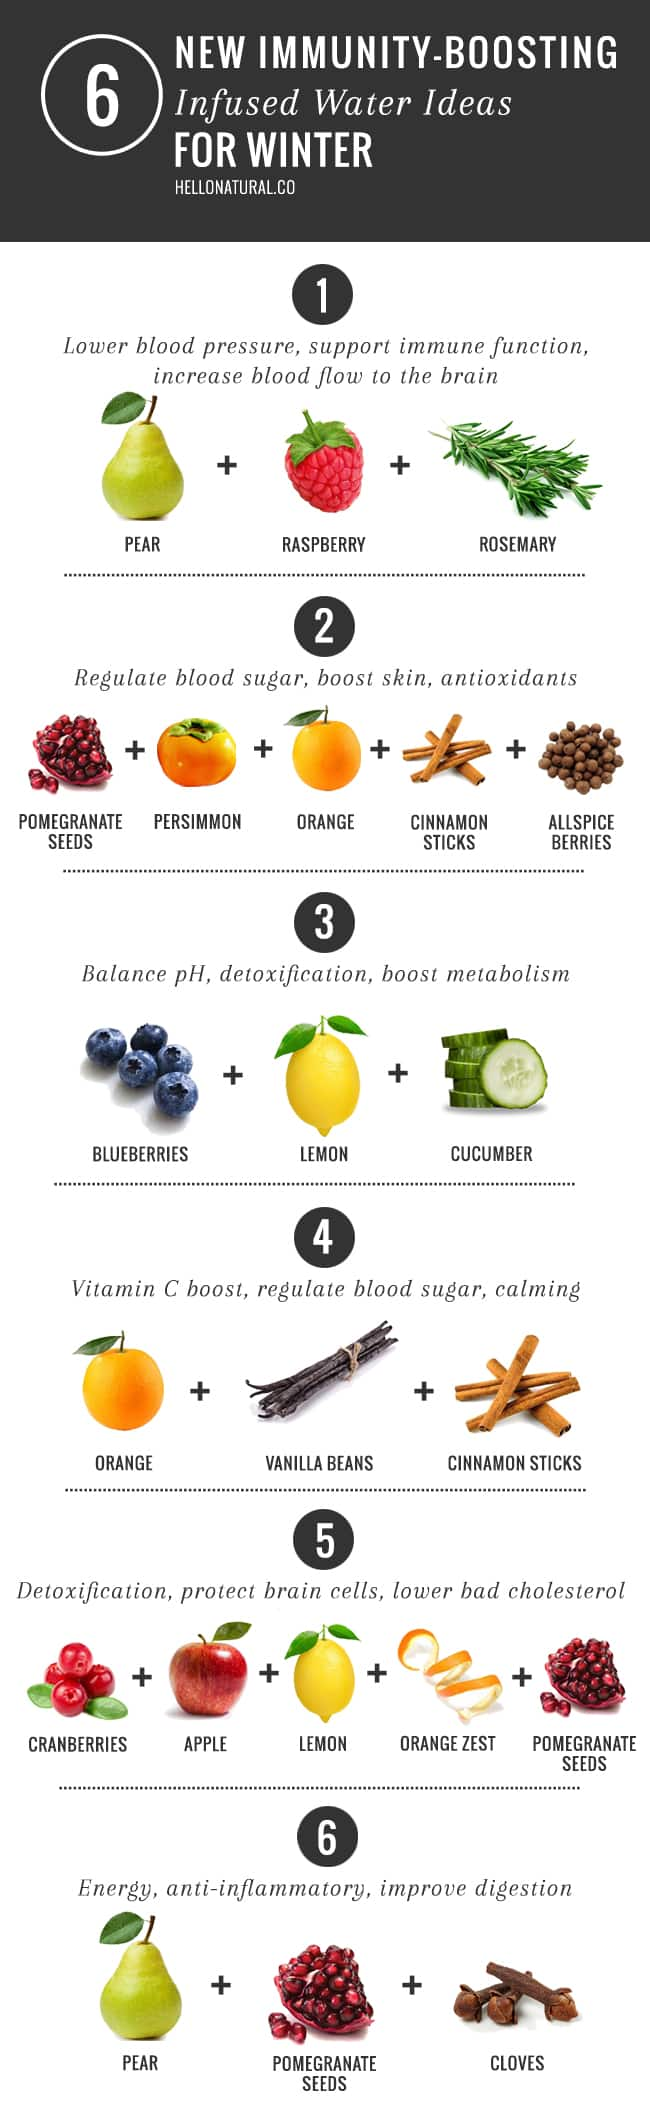 5-immunity-boosting-infused-water-ideas